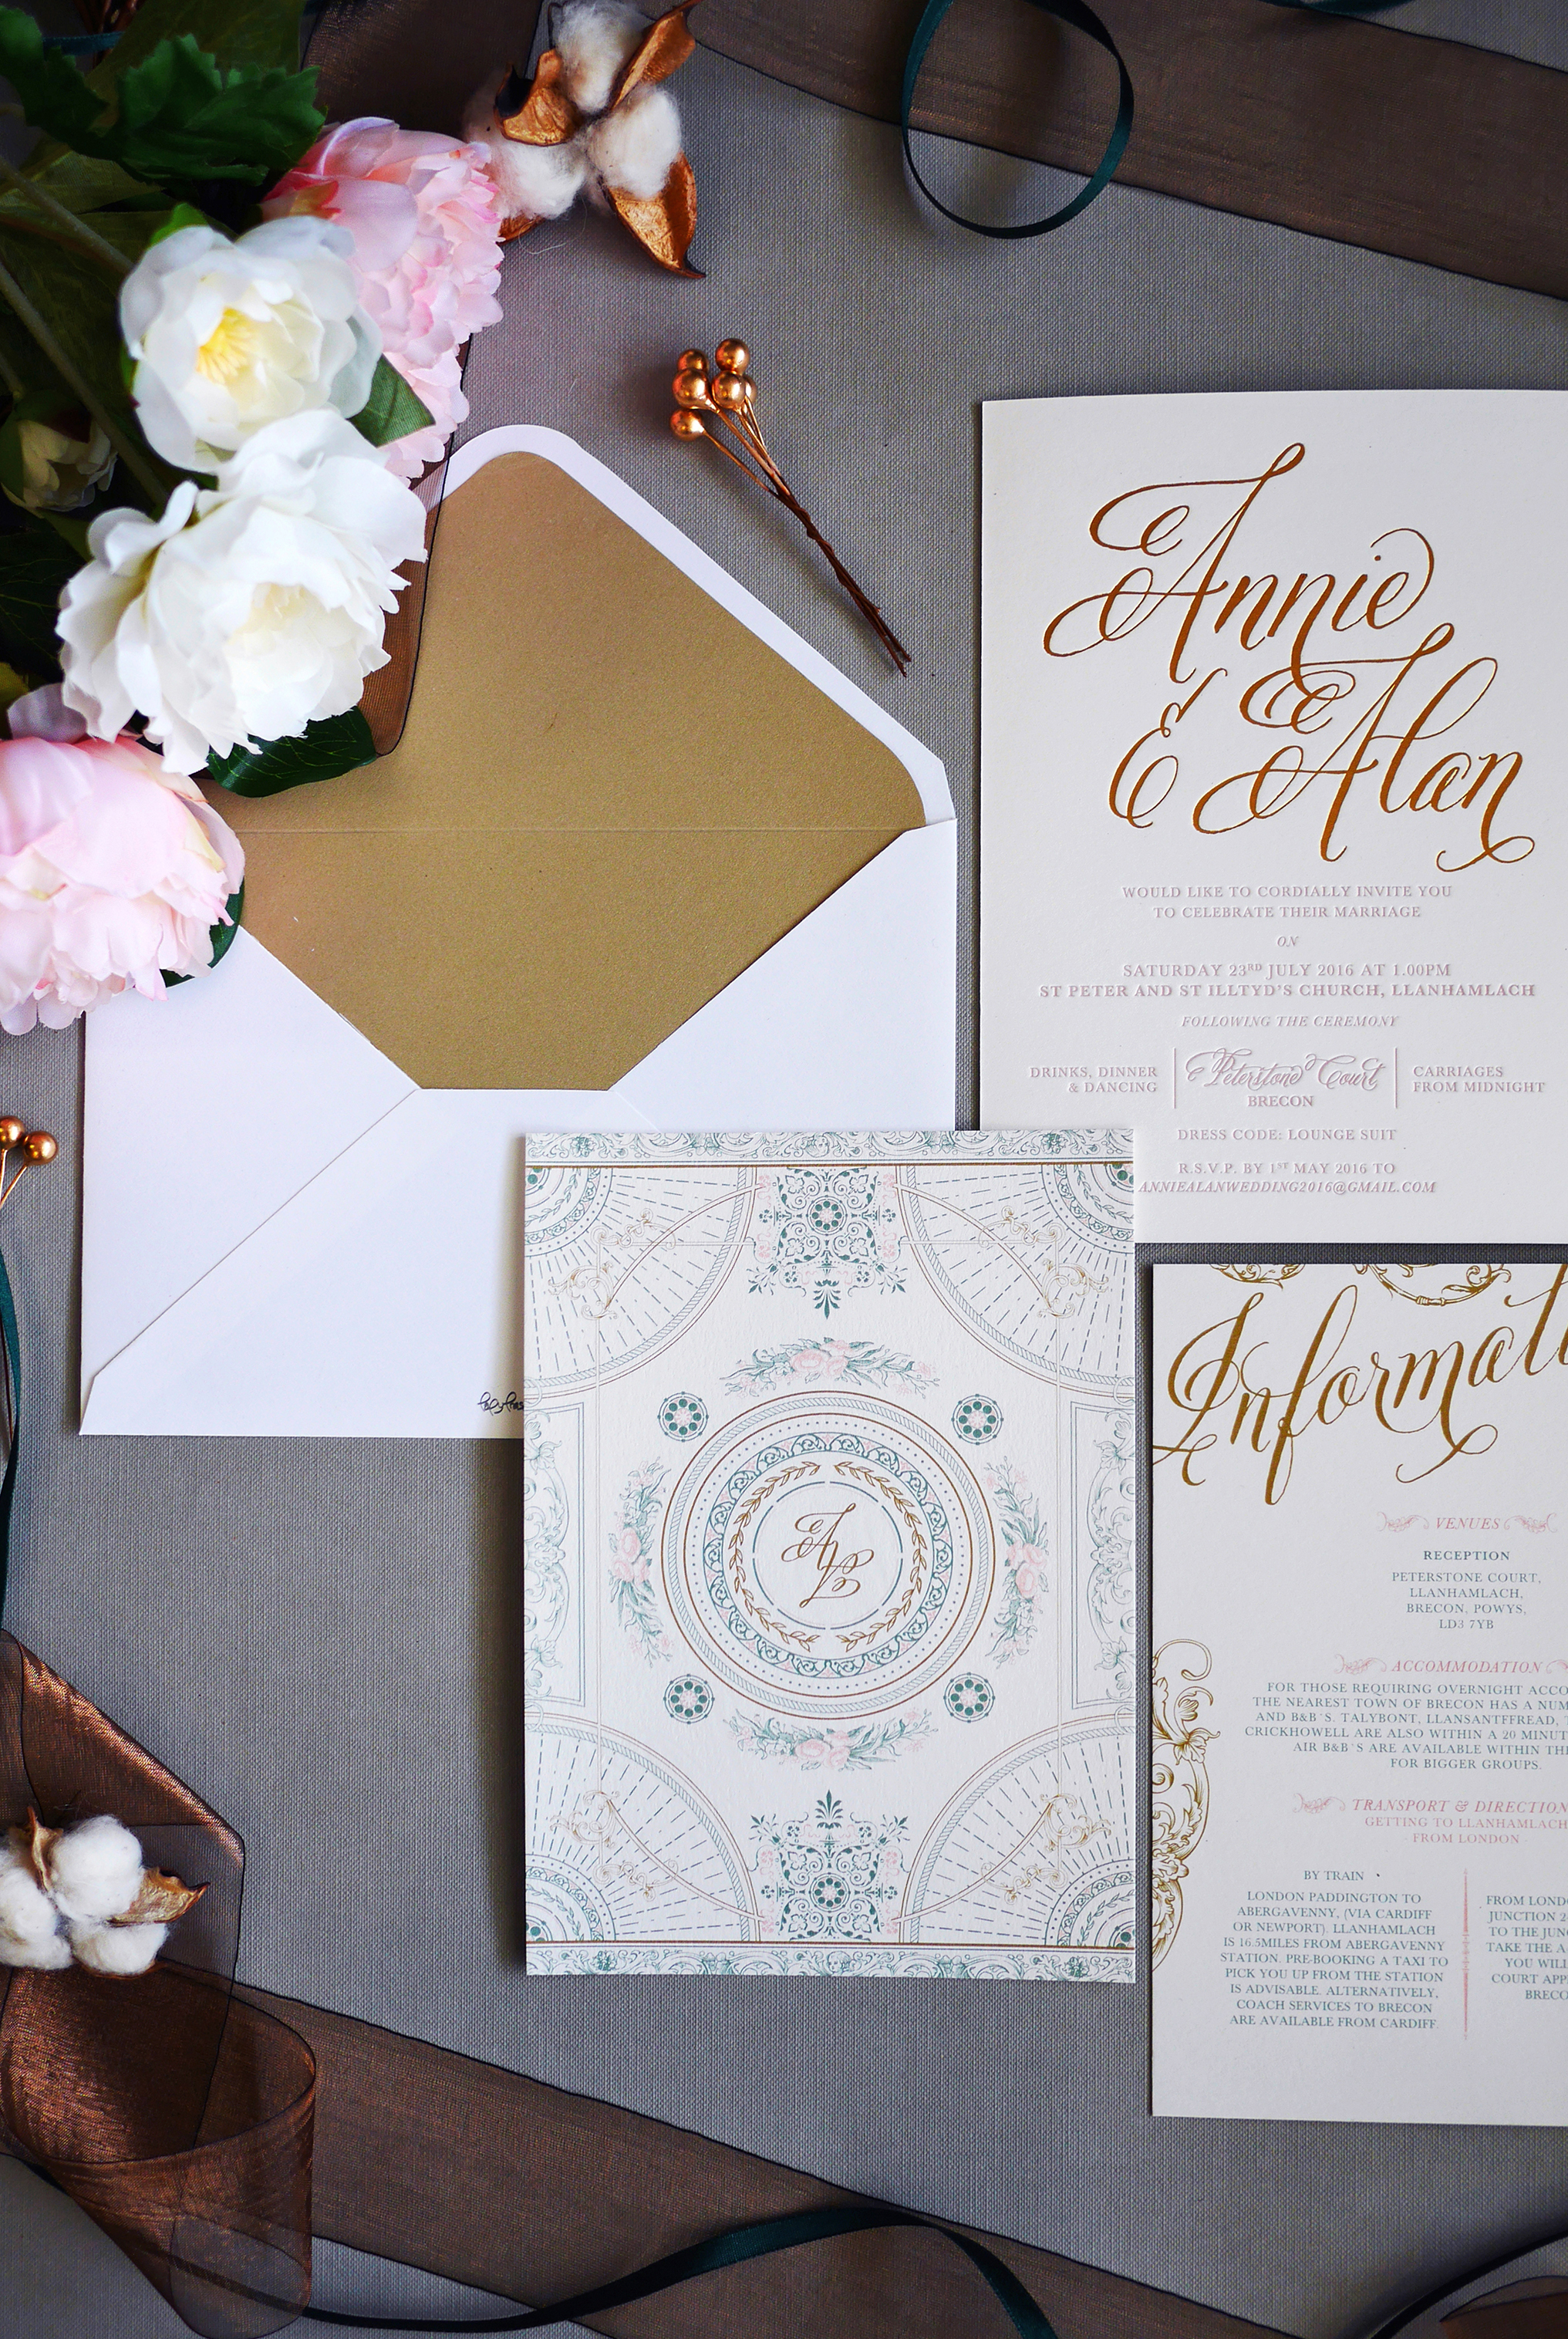 PapyPress | Wedding Invitations in Singapore | Bridestory.com